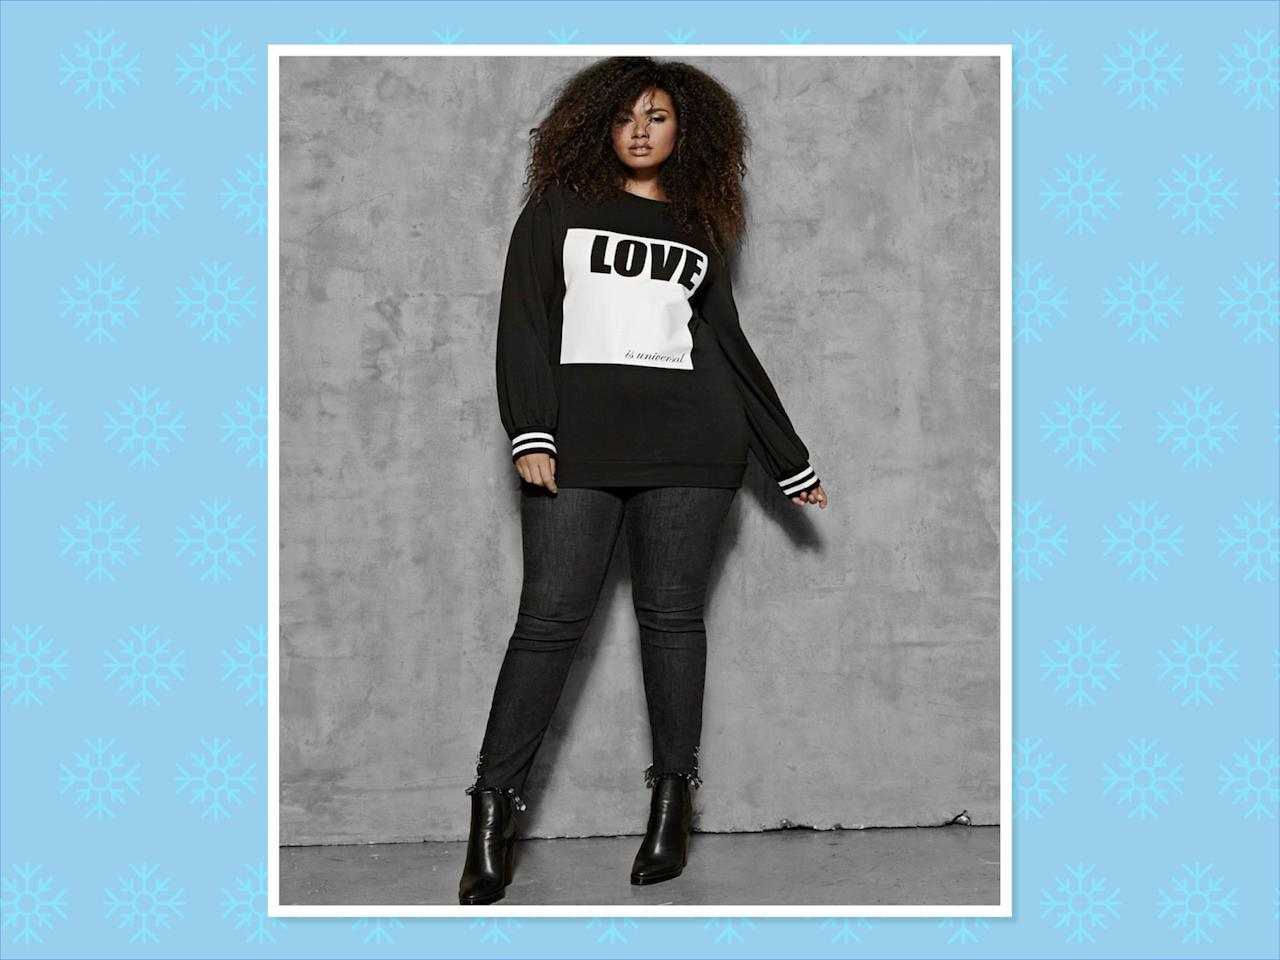 "<p>Nola x Jordyn Woods Crew Neck Sweater With Print, $58, <a rel=""nofollow"" href=""https://www.additionelle.com/en-us/nola-x-jordyn-woods-crew-neck-sweater-with-print/771220.html?cgid=Collections-Jordyn-Woods&dwvar_771220_color=Black"">Addition Elle</a> (Photo: Addition Elle) </p>"